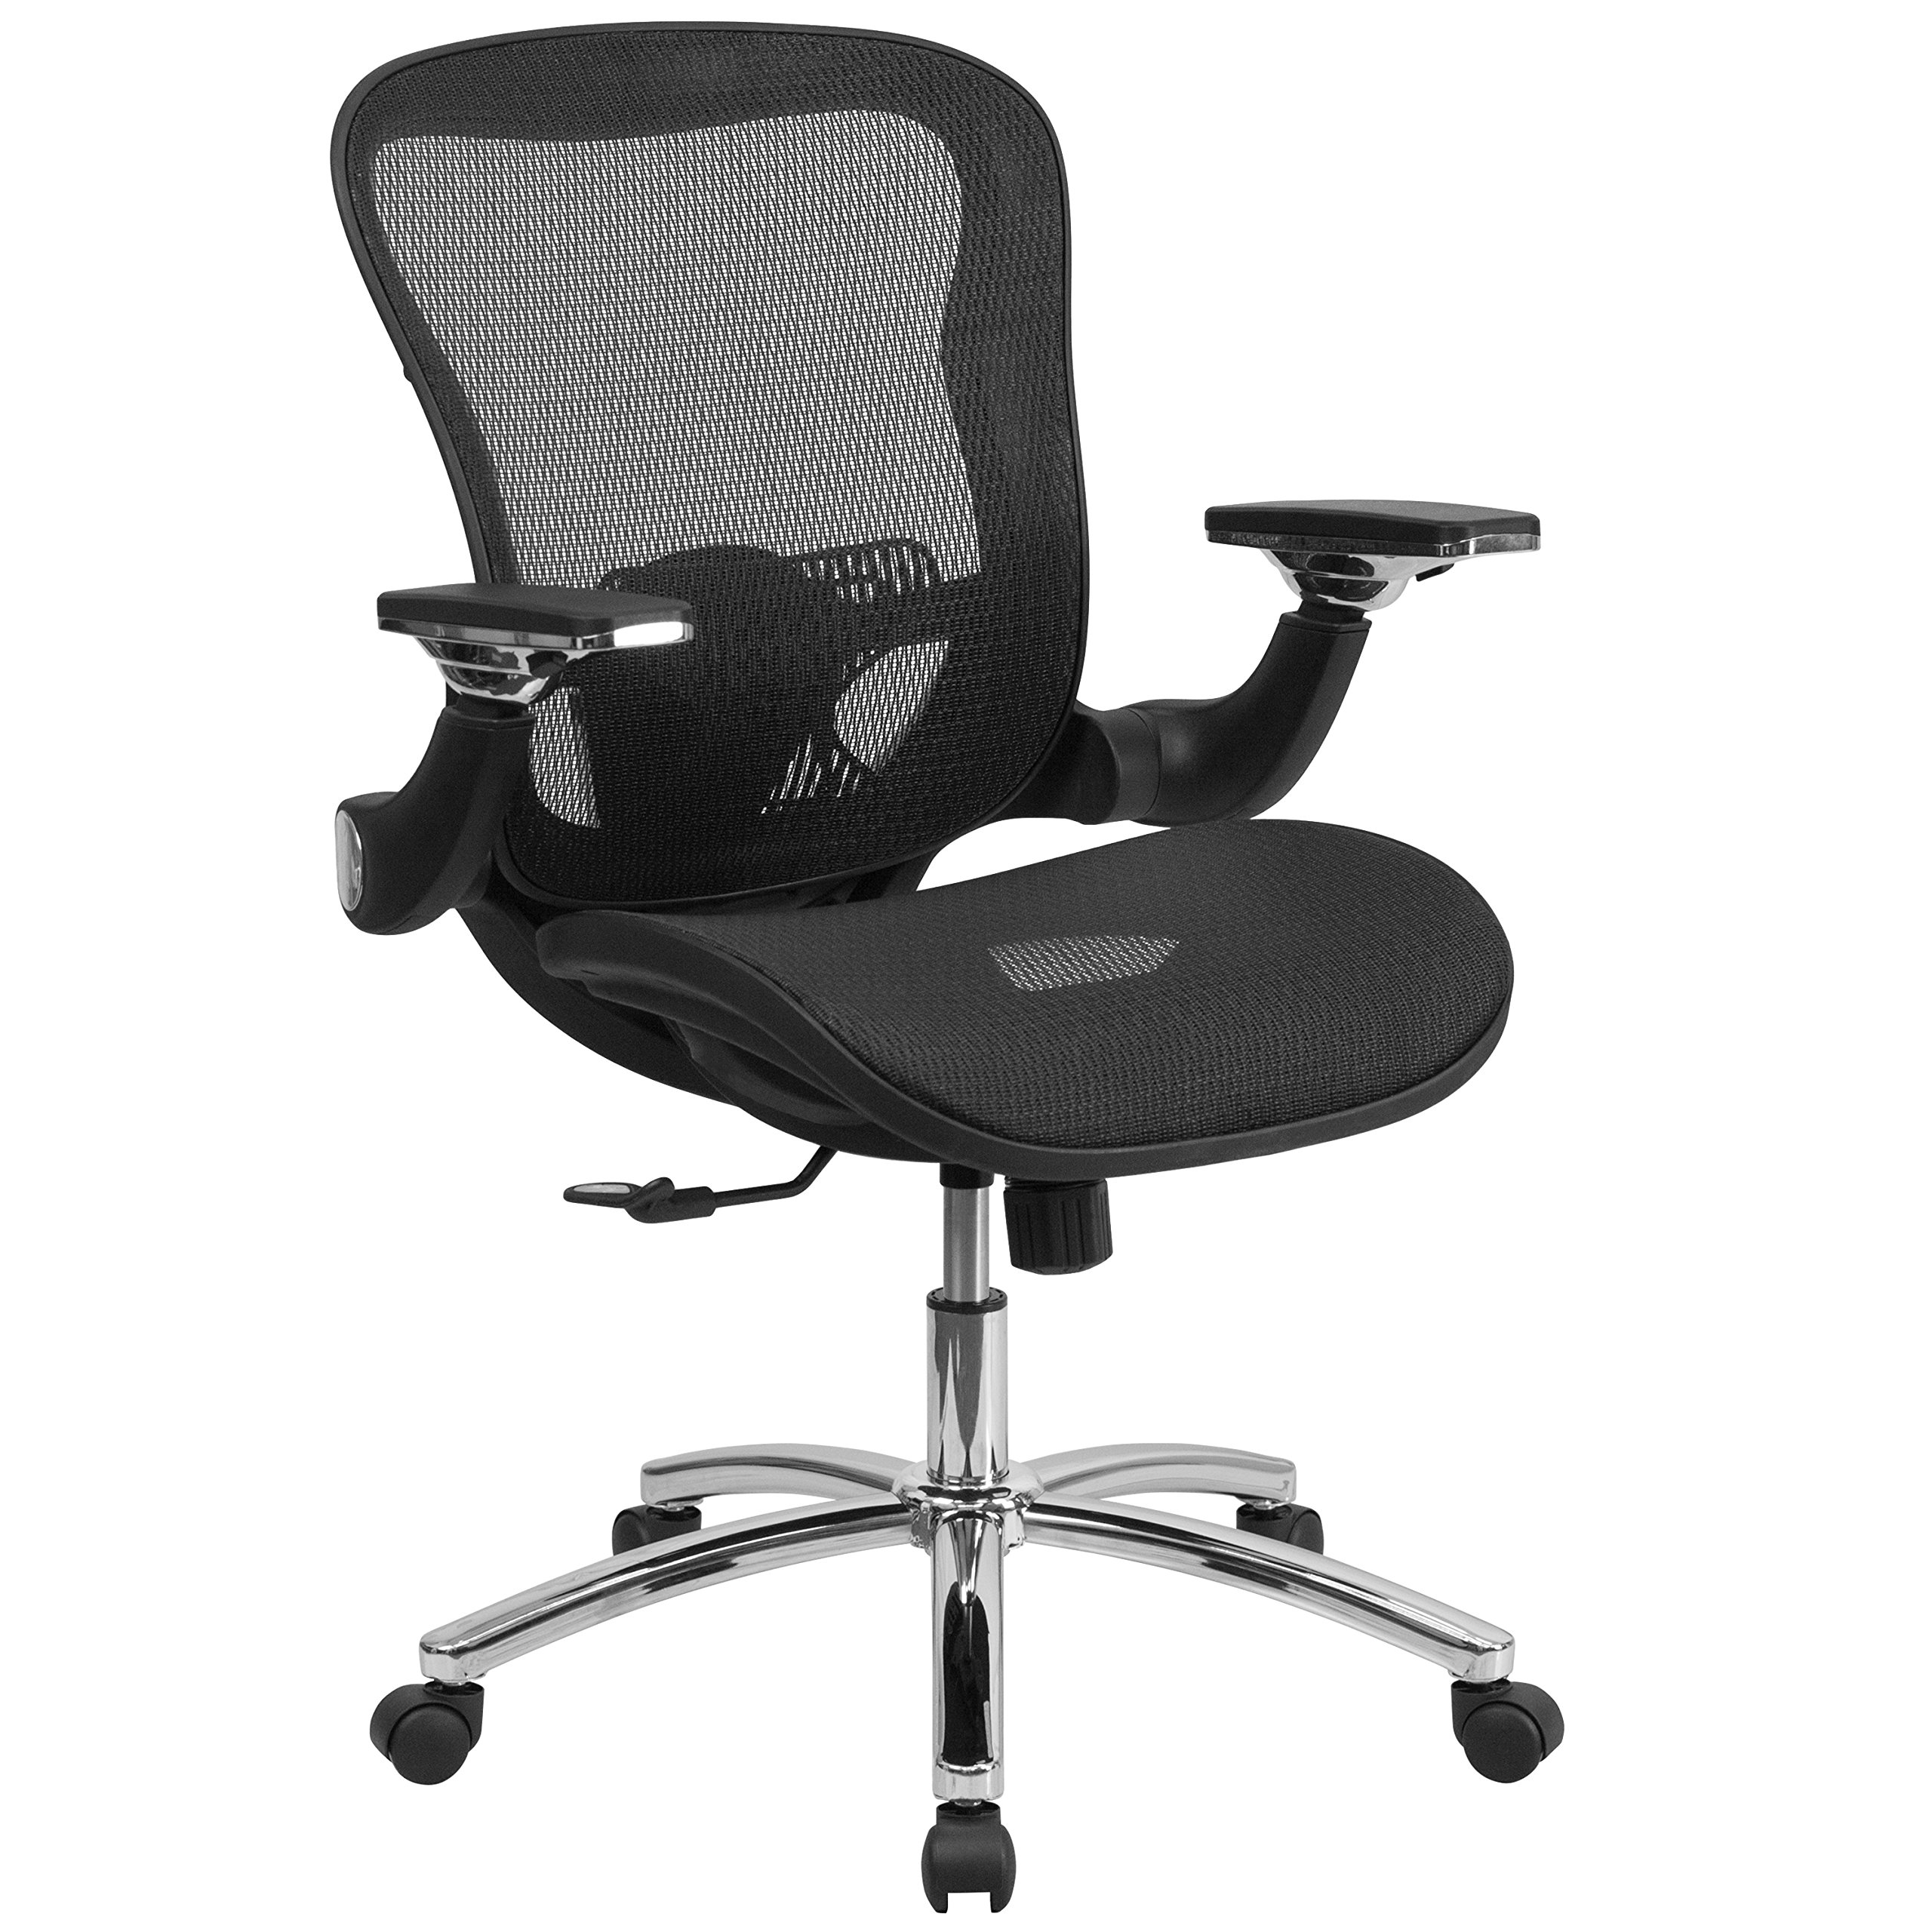 Flash Furniture Mid-Back Transparent Black Mesh Executive Swivel Ergonomic Office Chair with Synchro-Tilt & Height Adjustable Flip-Up Arms by Flash Furniture